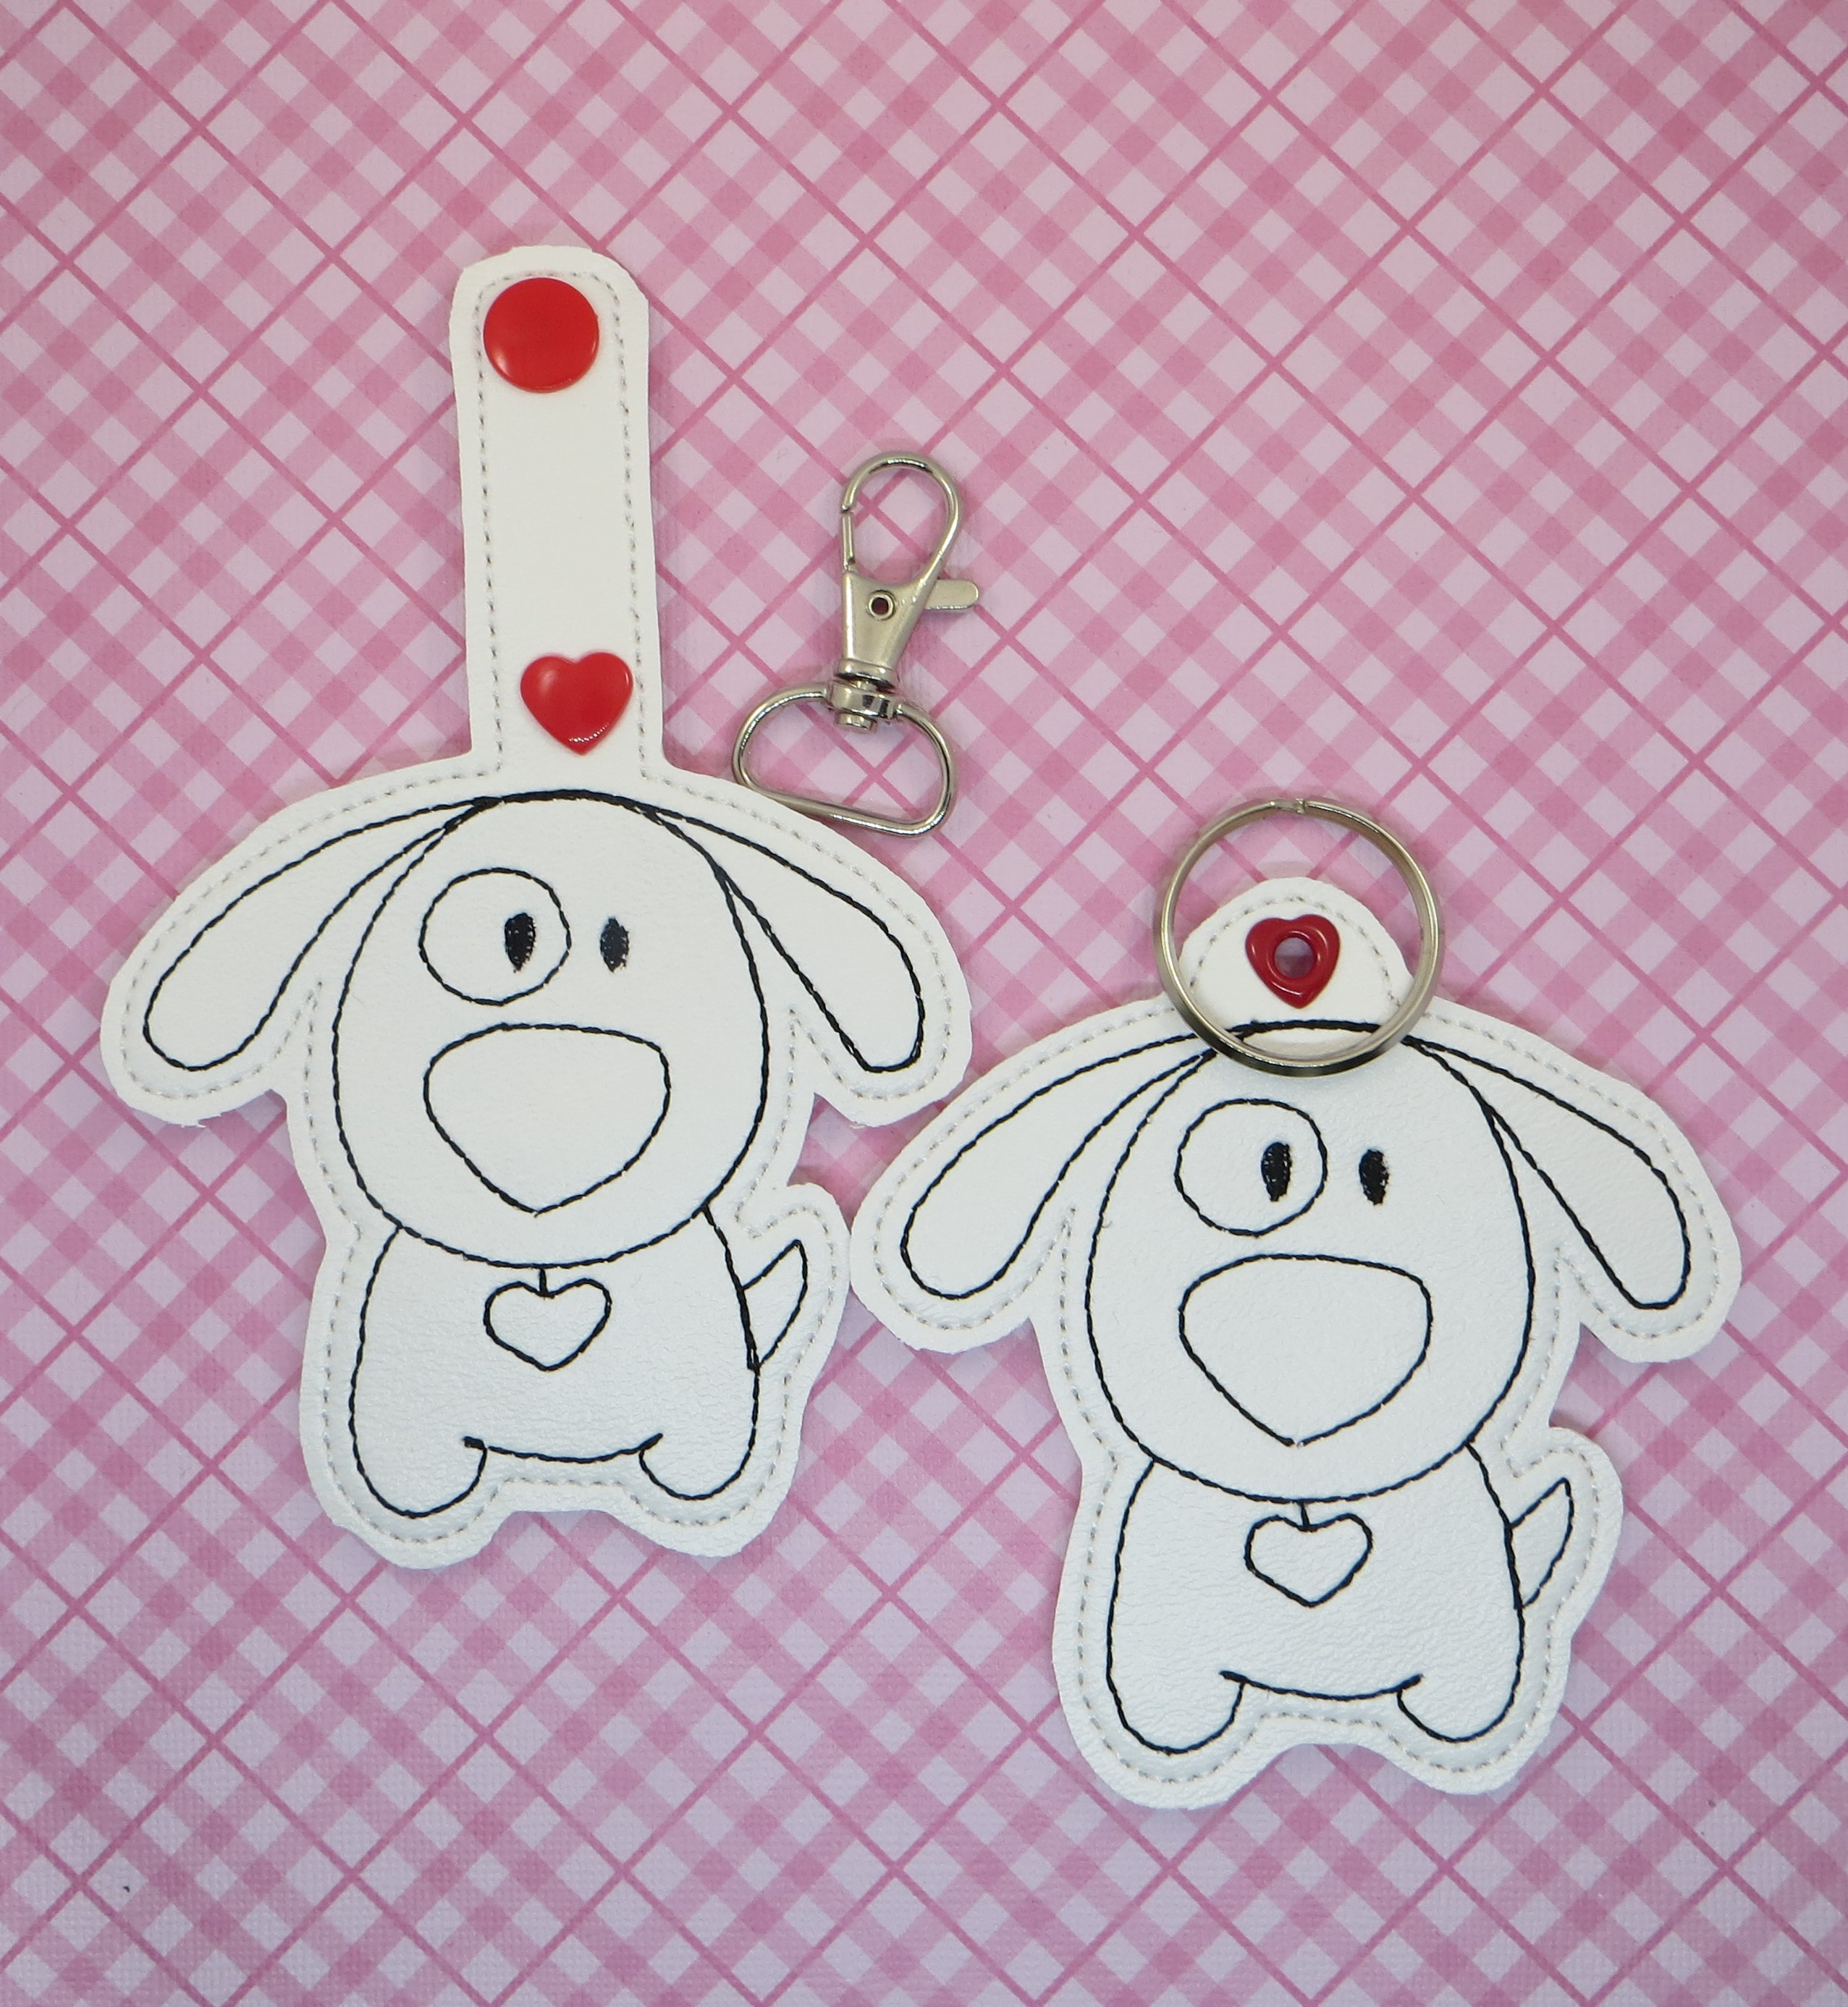 COLOR PUPPY LOVE Snaptab / Keyfob Embroidery Design